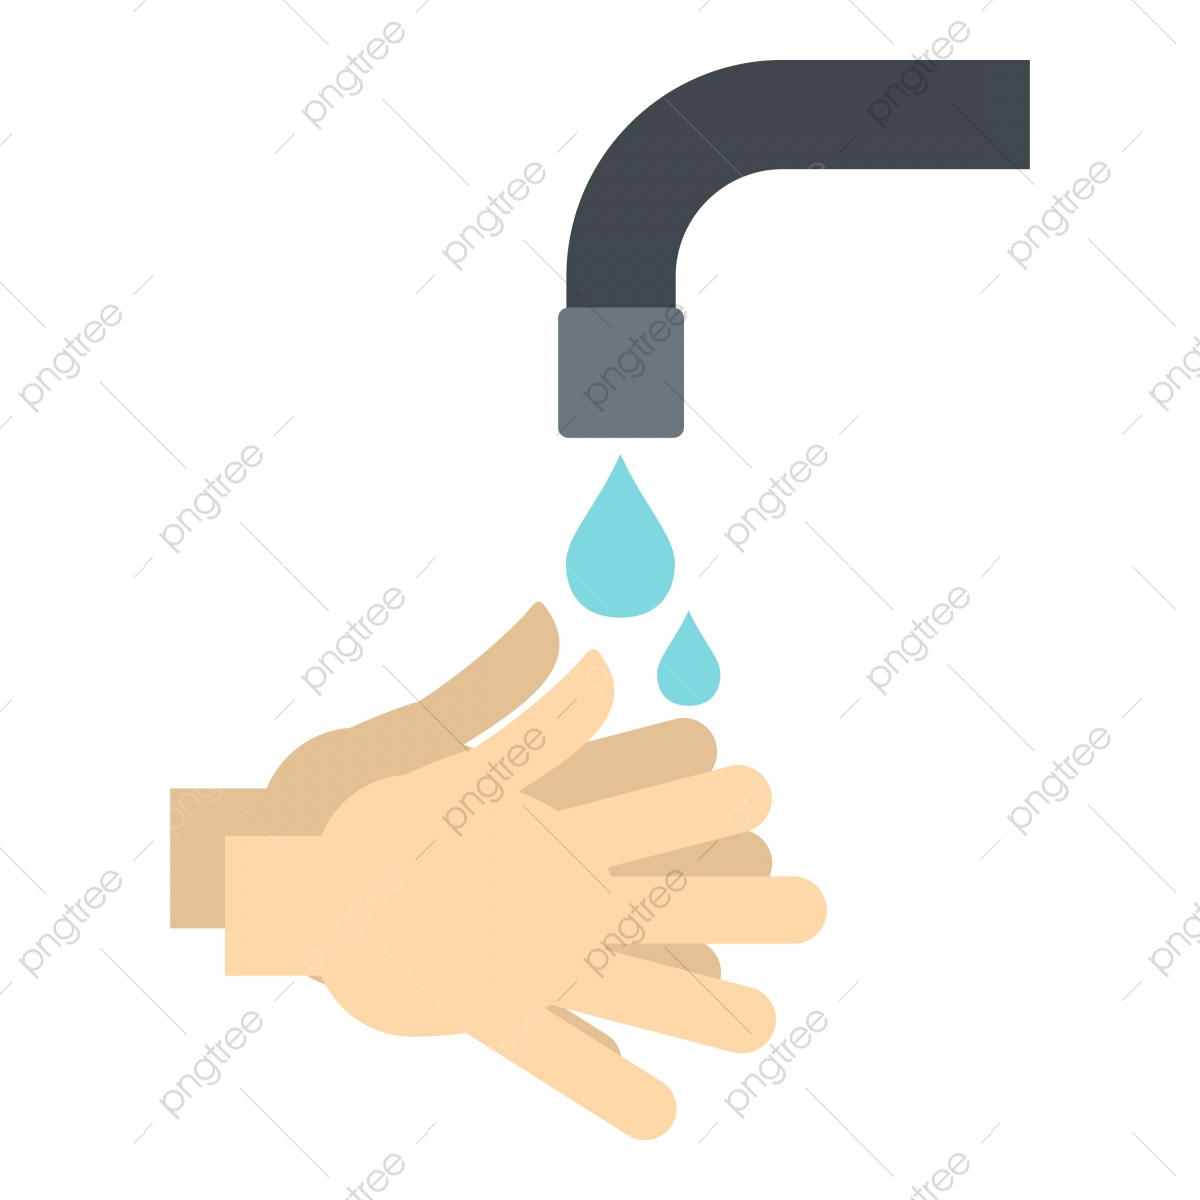 Washing Hands Under Running Water Icon Isolated Isolated Hand